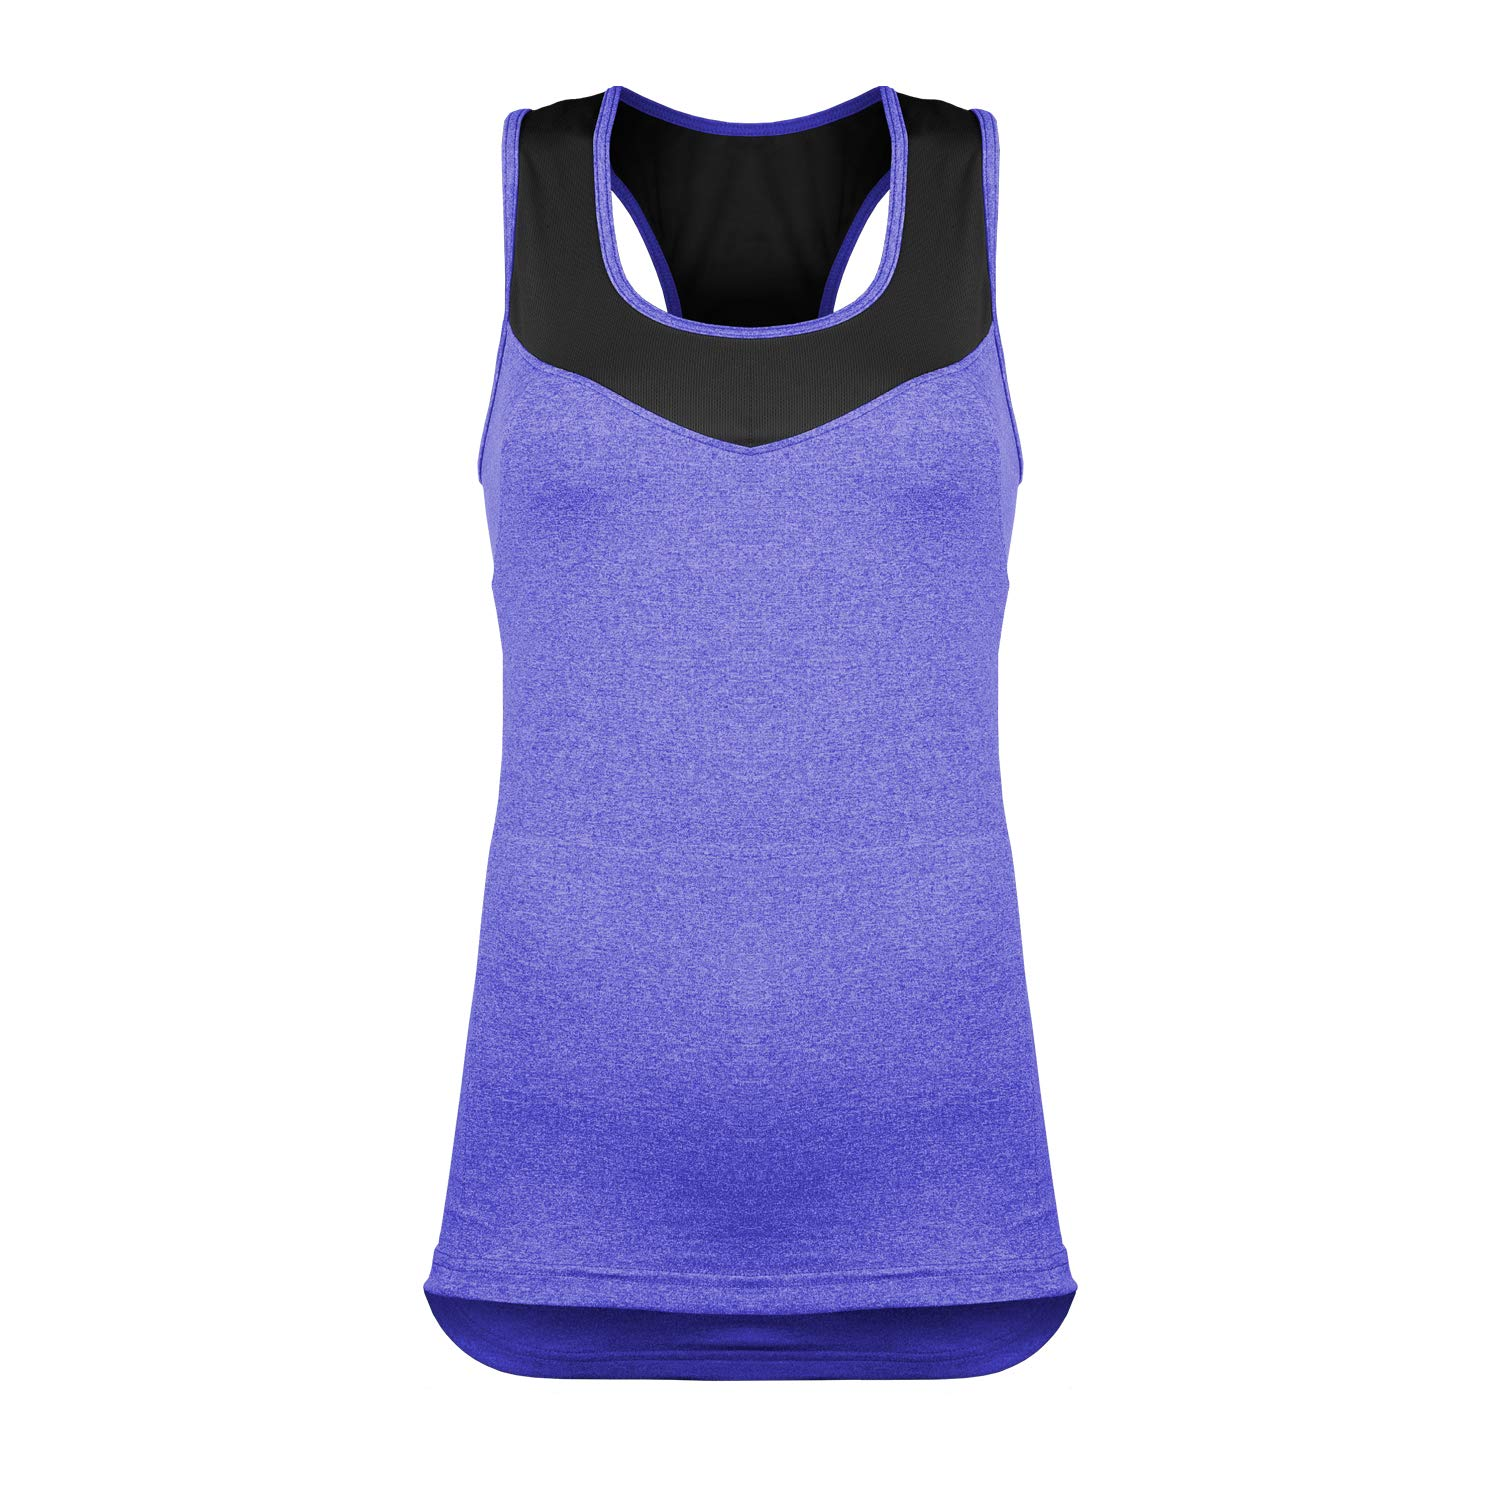 Women's Activate Cycling & Running Tank Top with Pockets (Large, Purple) by Urban Cycling Apparel